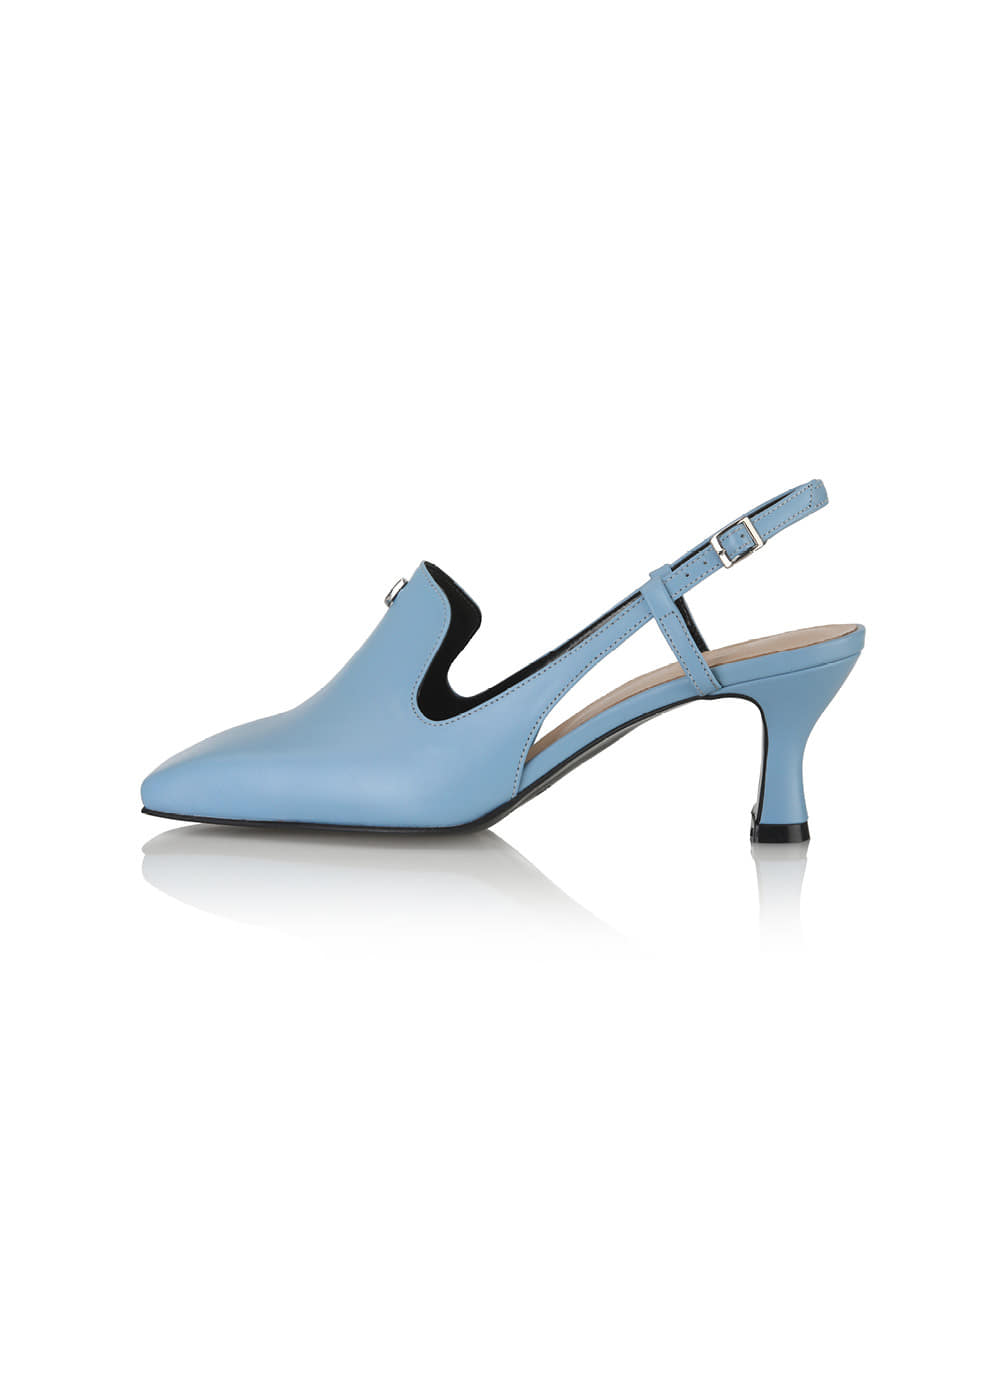 Y.06 SUCRE ÉLEVÉ Slingbacks / Y.06-S52 / 7 colors